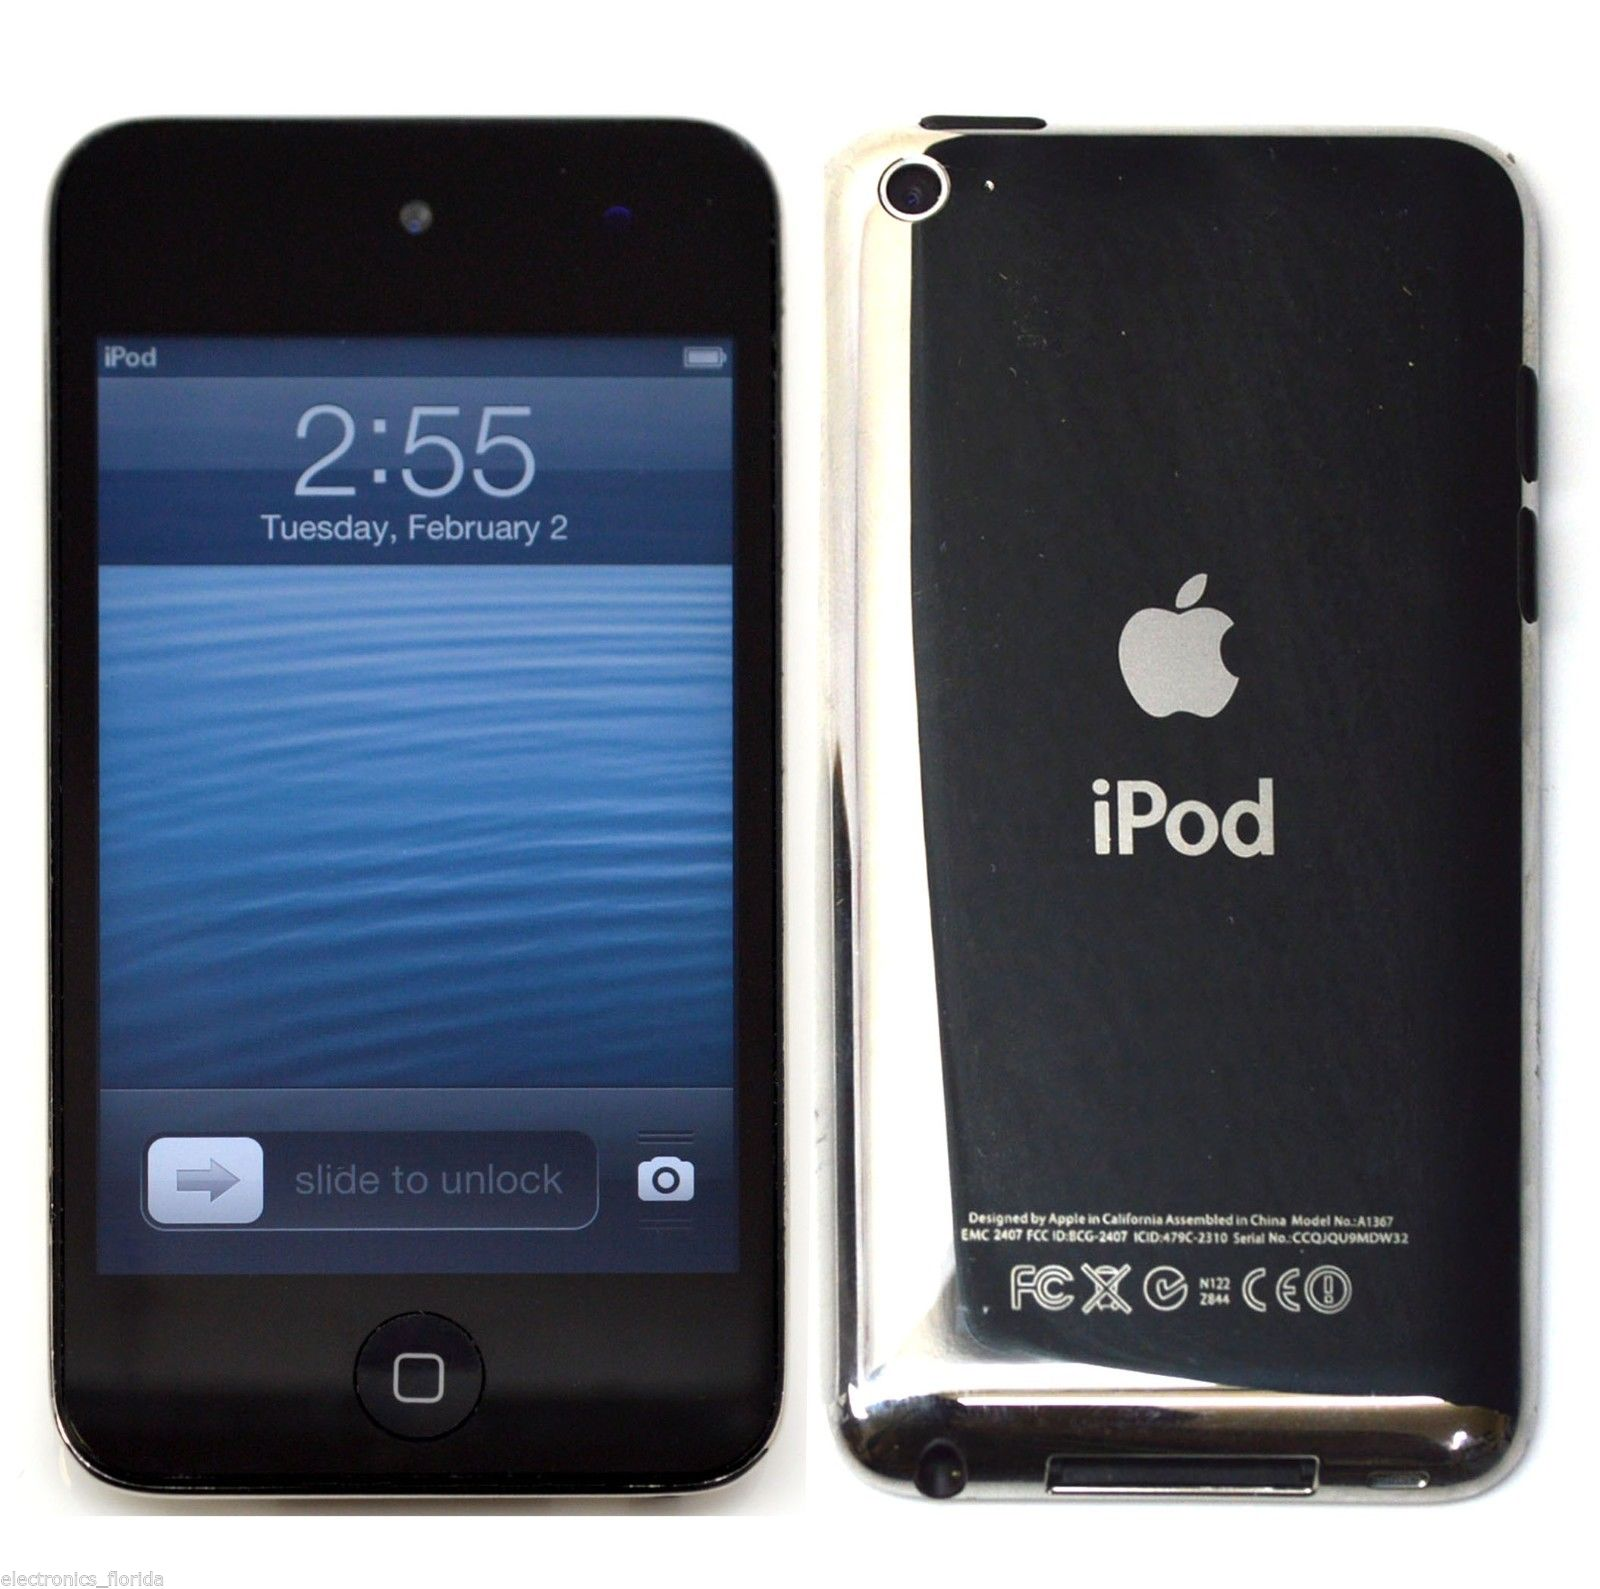 New For Apple iPod touch 4th Generation Black 32GB MP4/5 ...